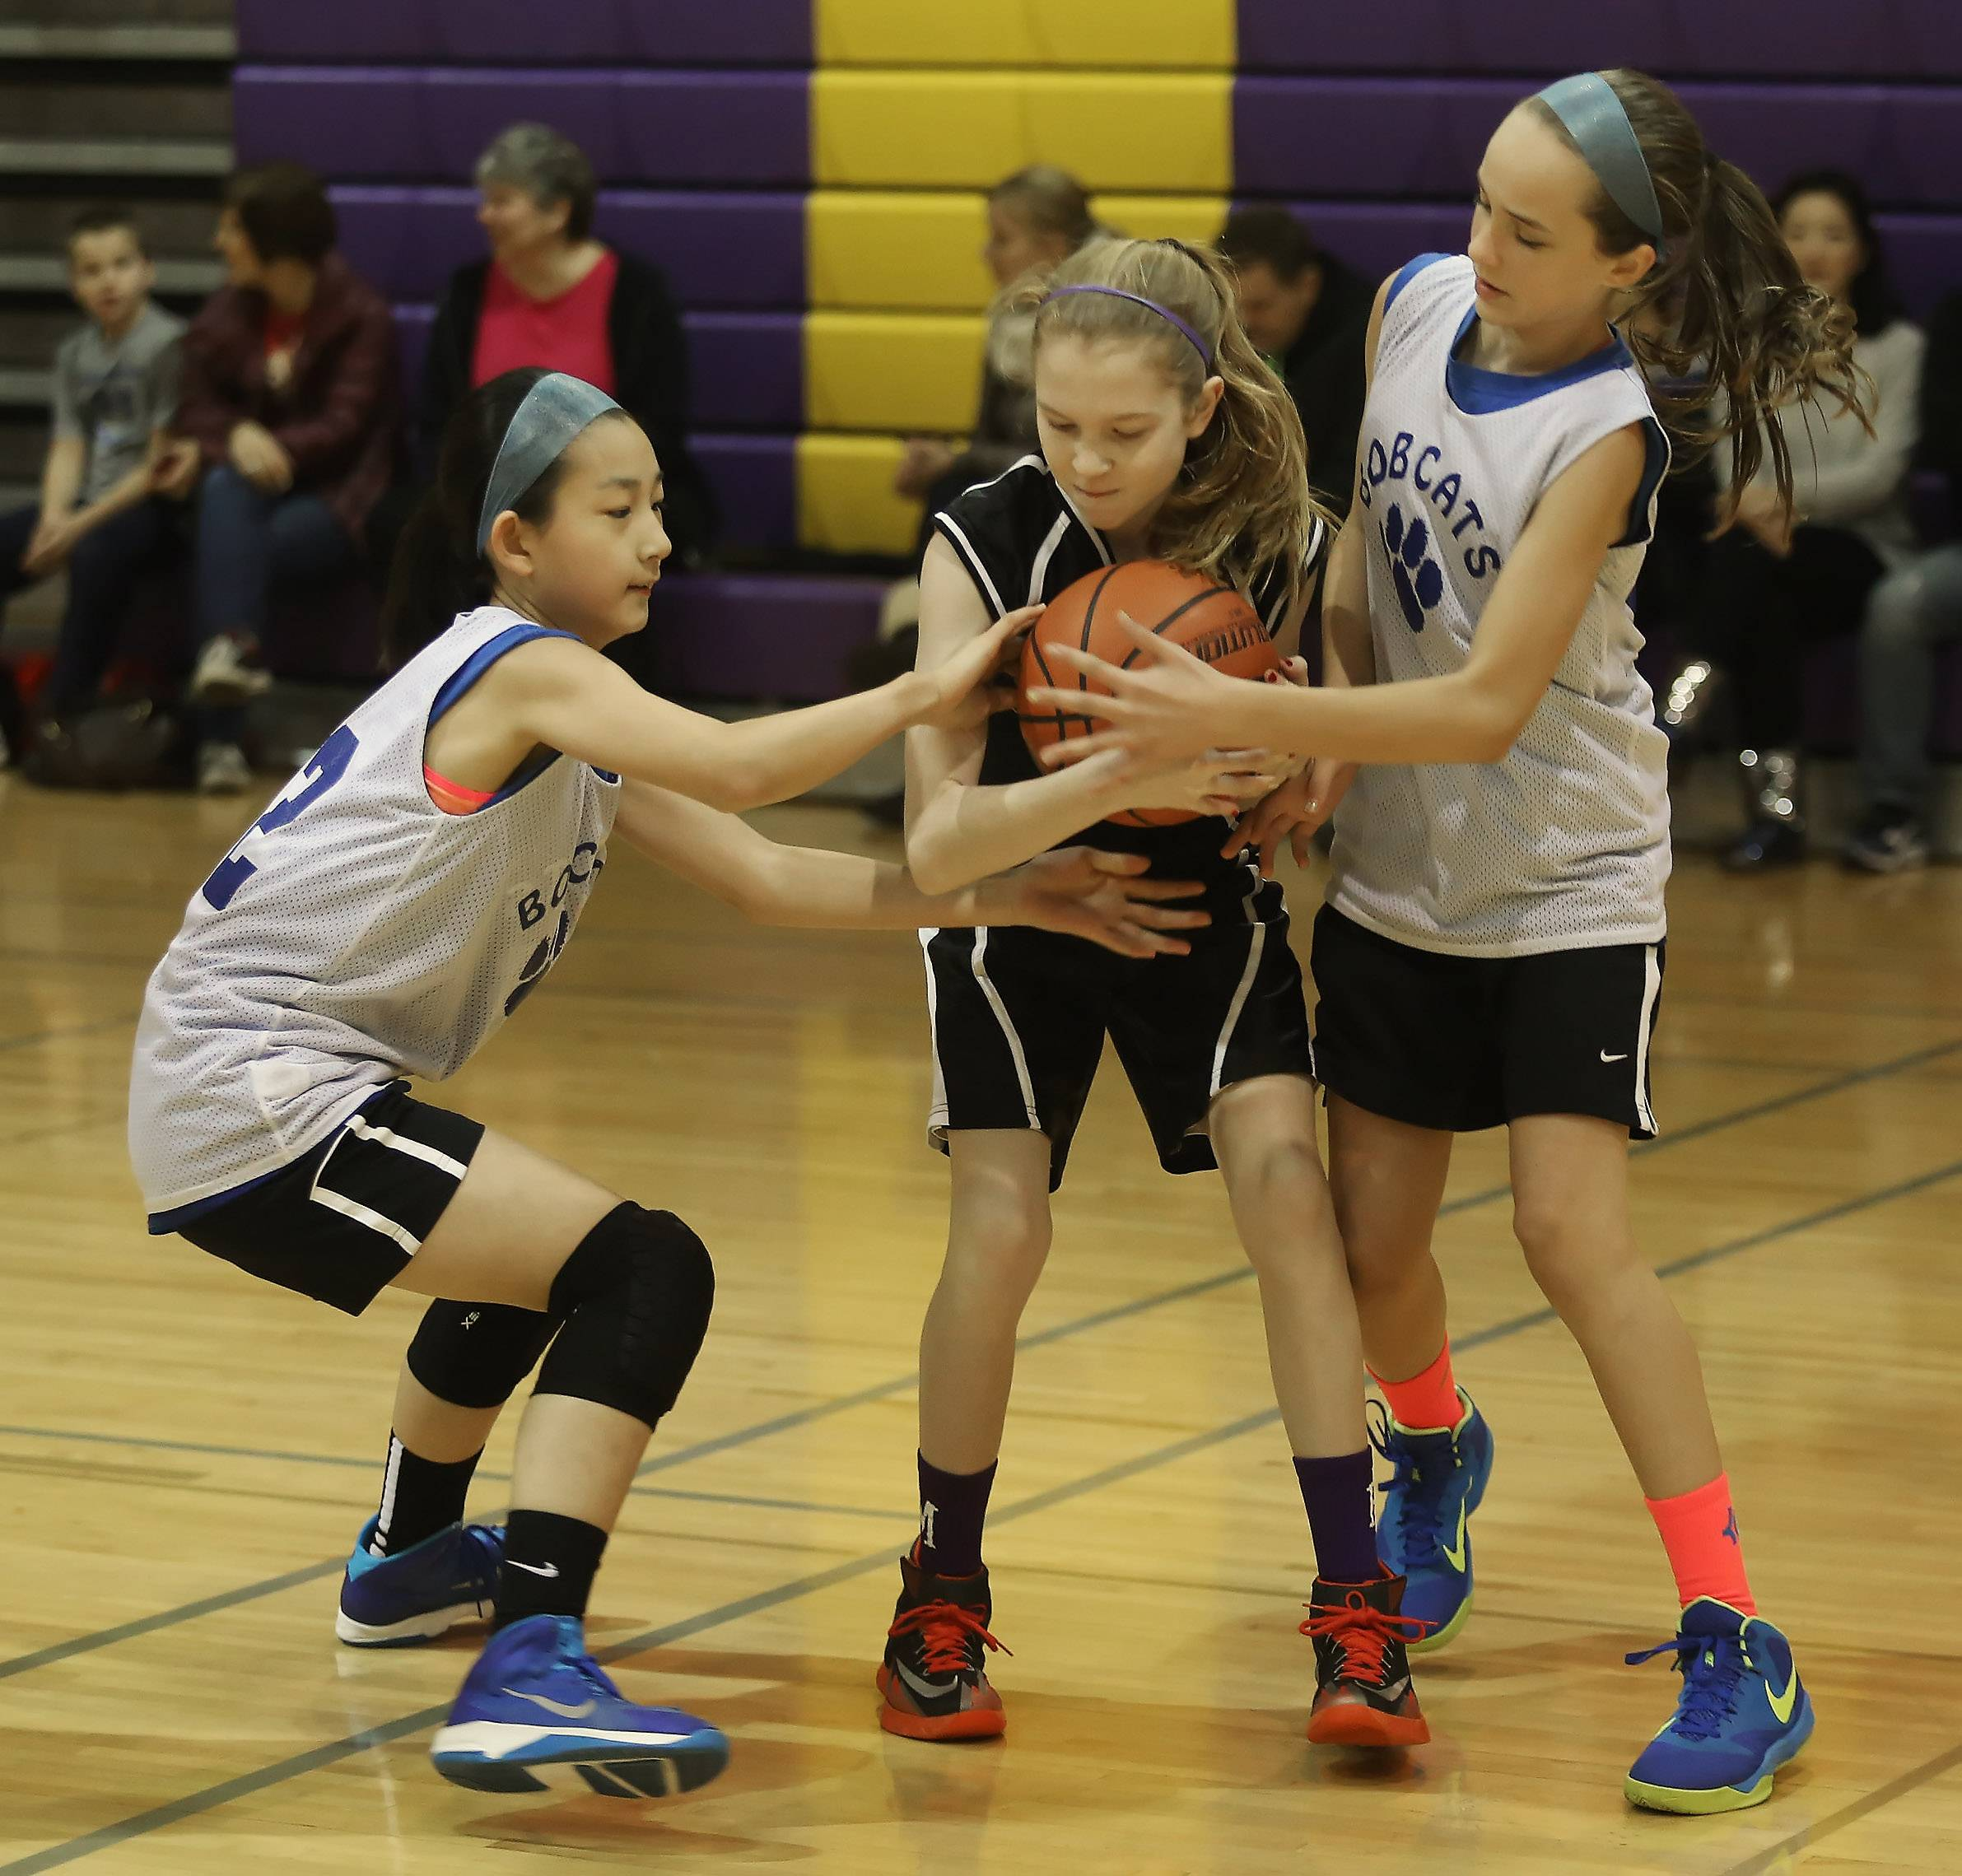 Seventh-grade Bobcats players Yunah Shin, left, and Margueret Spear of Palatine try to take the ball away from GEEK player Erin Behls of Arlington Heights during the annual Mustang 3-on-3 Mustang Shootout on Sunday at Rolling Meadows High School. The Rolling Meadows High School Booster Club sponsored the event.